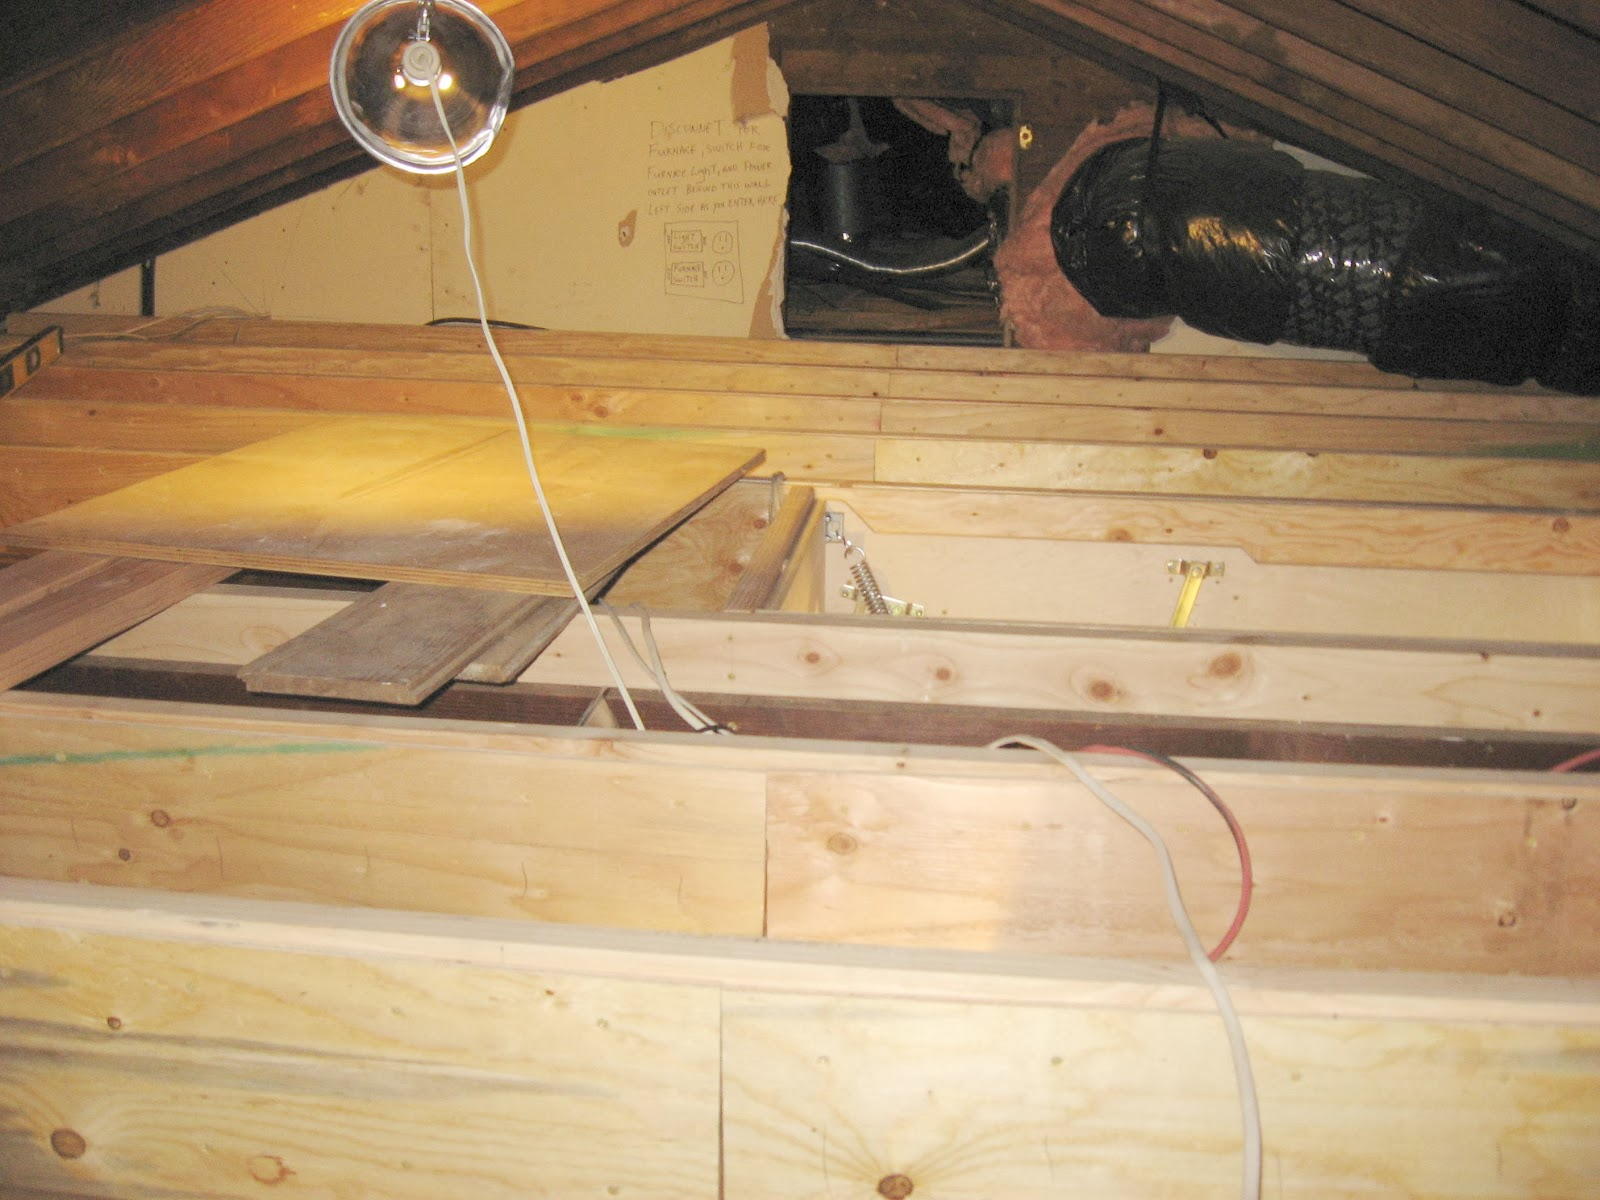 attic door insulate insulated a carpenter access crawlspace to crawl concord space how